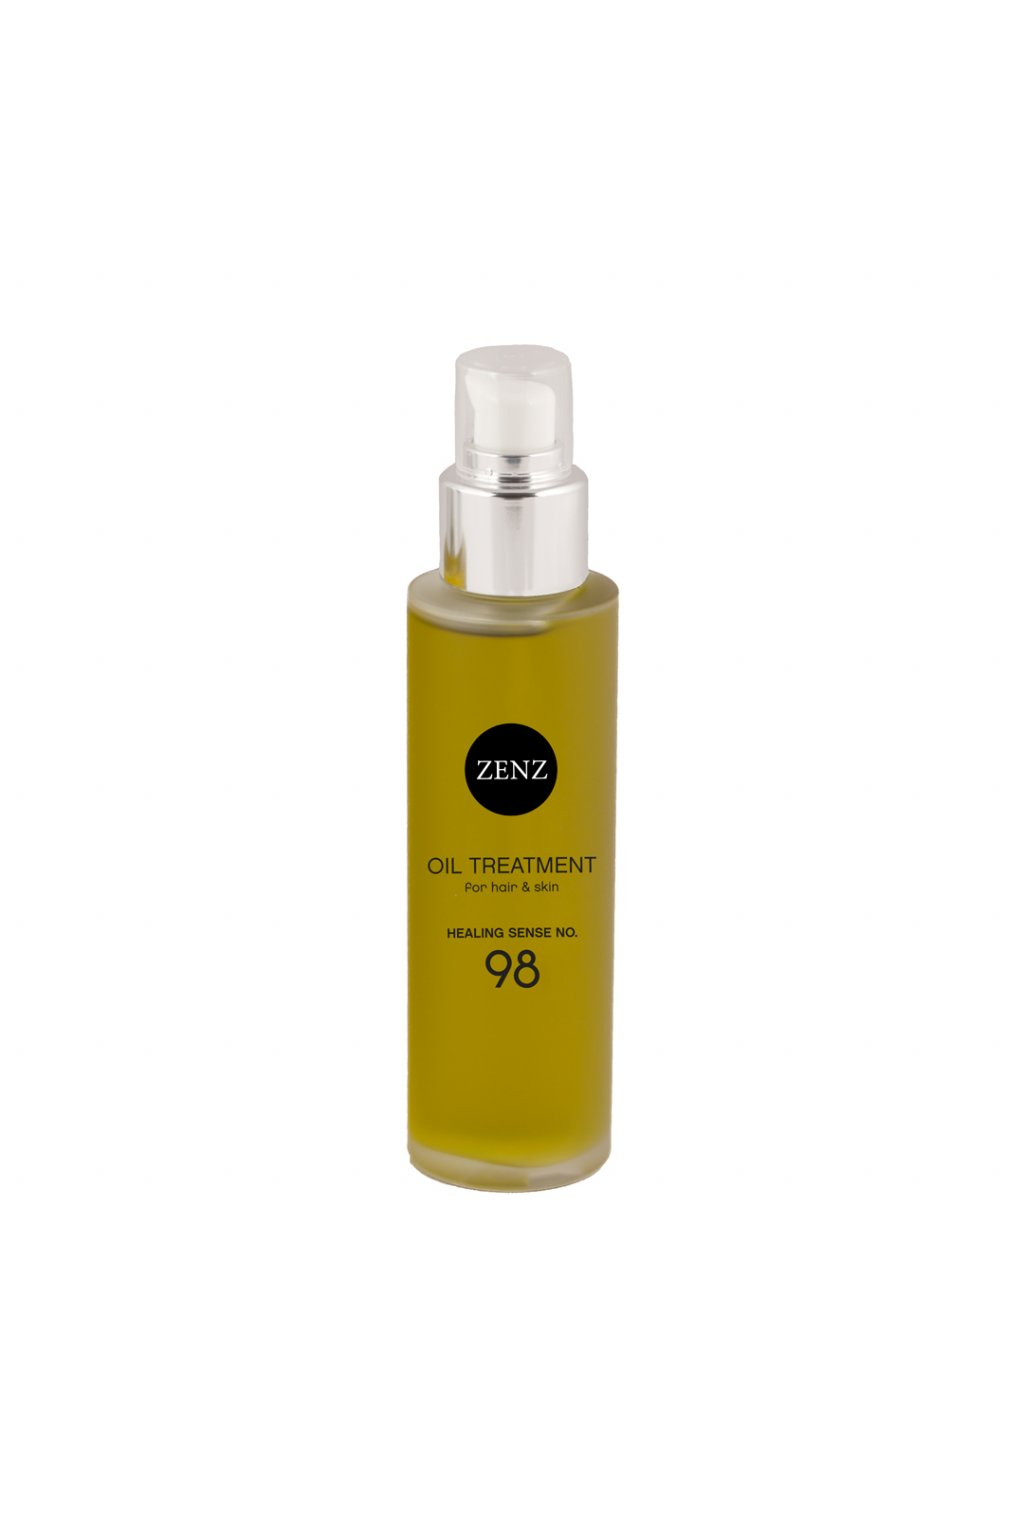 NO. 98 Oil Treatment HEALING SENSE